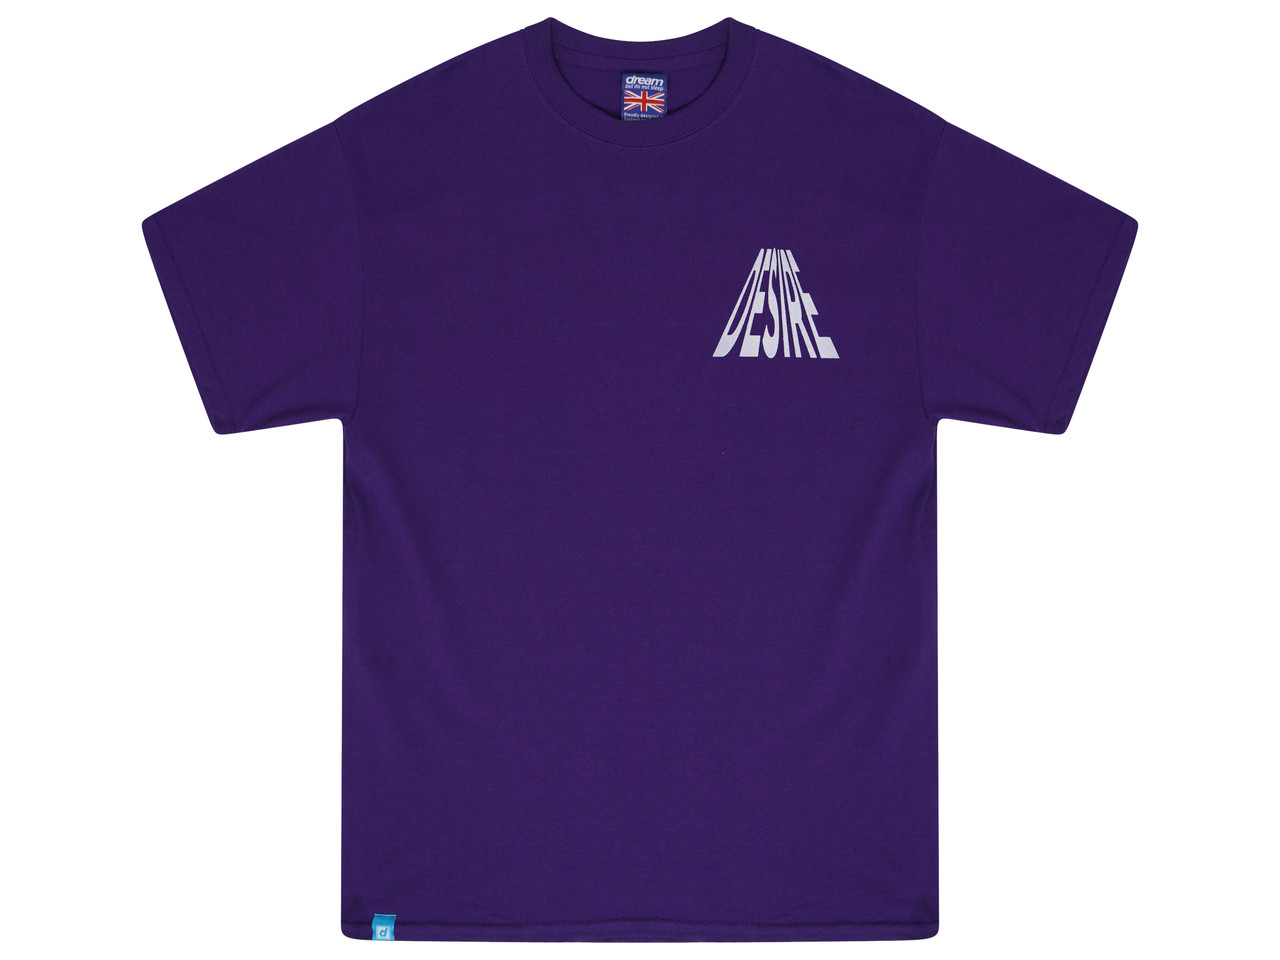 Purple Short Sleeved T-shirt With Desire Print